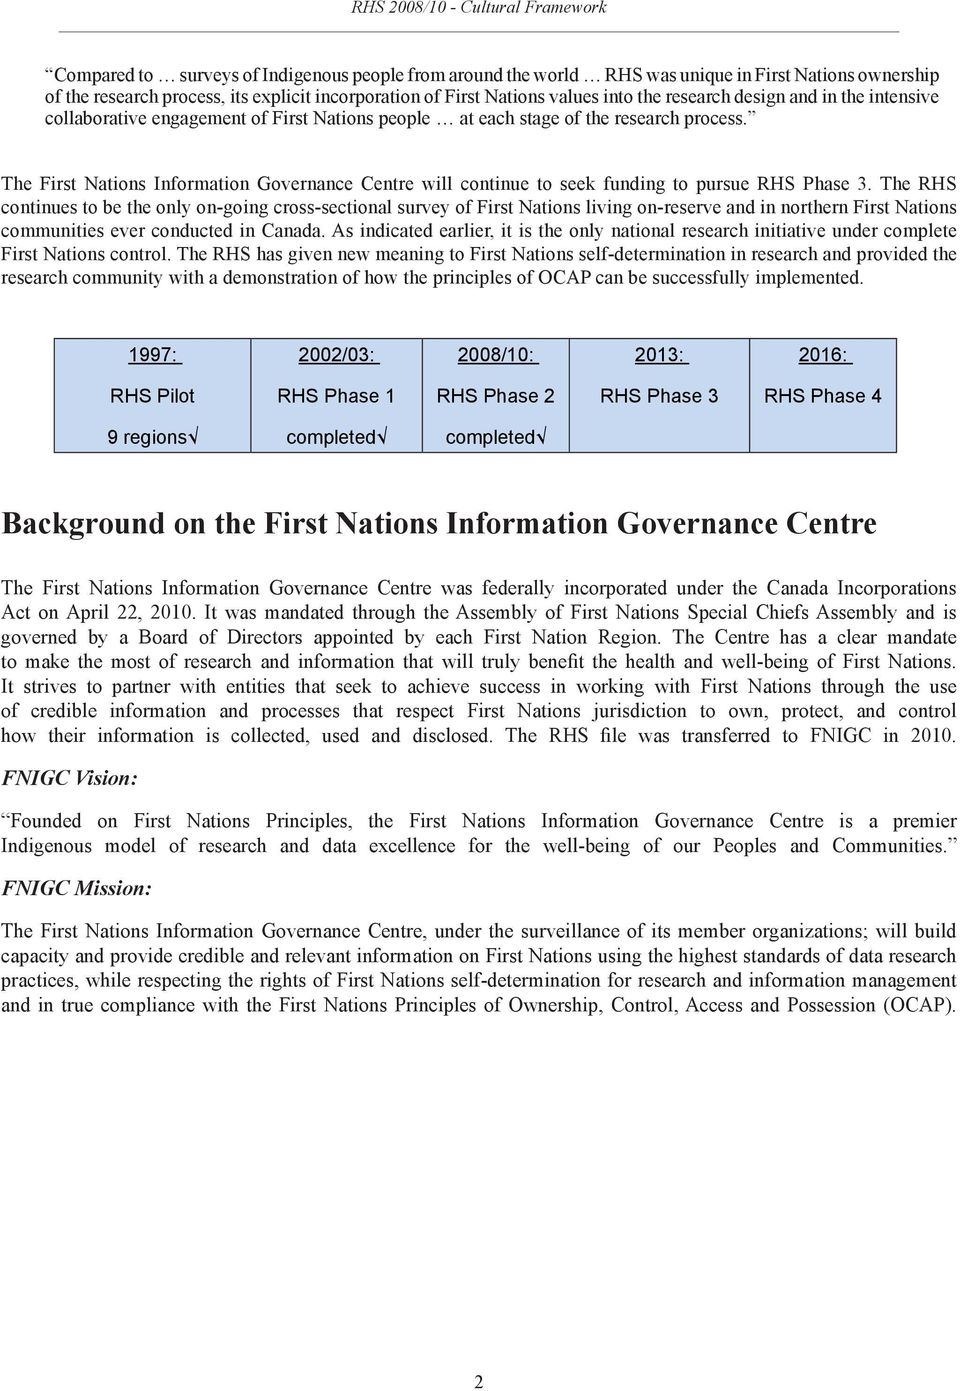 The First Nations Information Governance Centre will continue to seek funding to pursue RHS Phase 3.